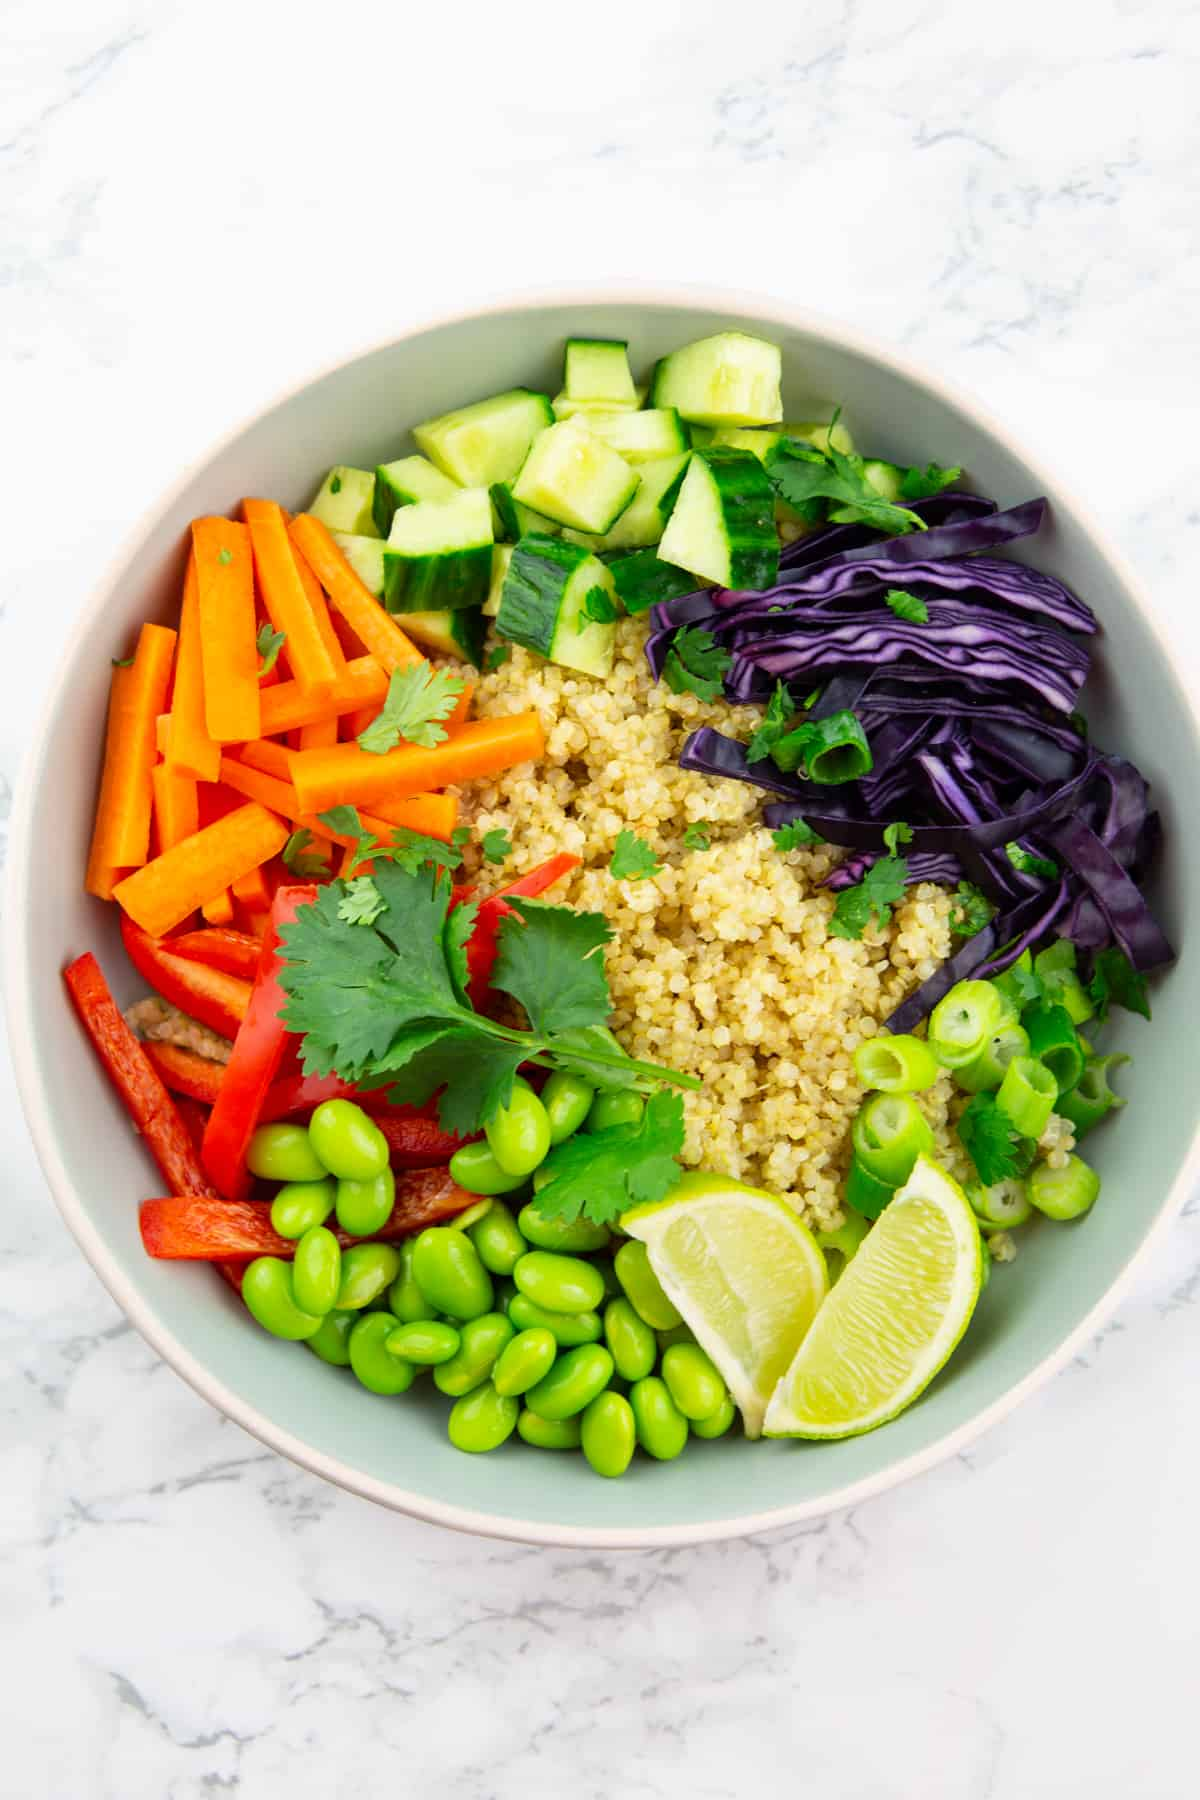 quinoa, carrots, bell pepper, cucumber, and edamame in a grey bowl